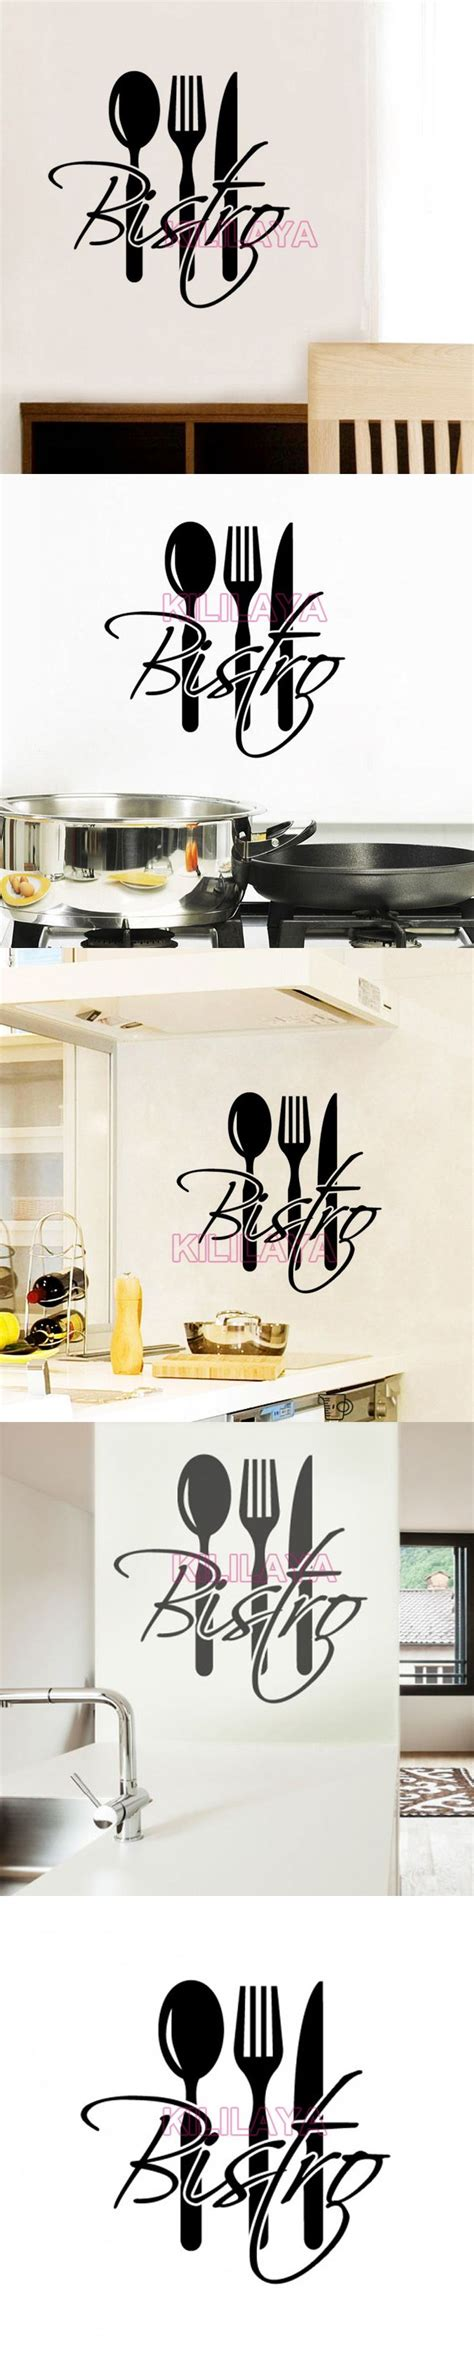 vinyl mural cuisine 25 best images about chef on ceramic tiles murals on